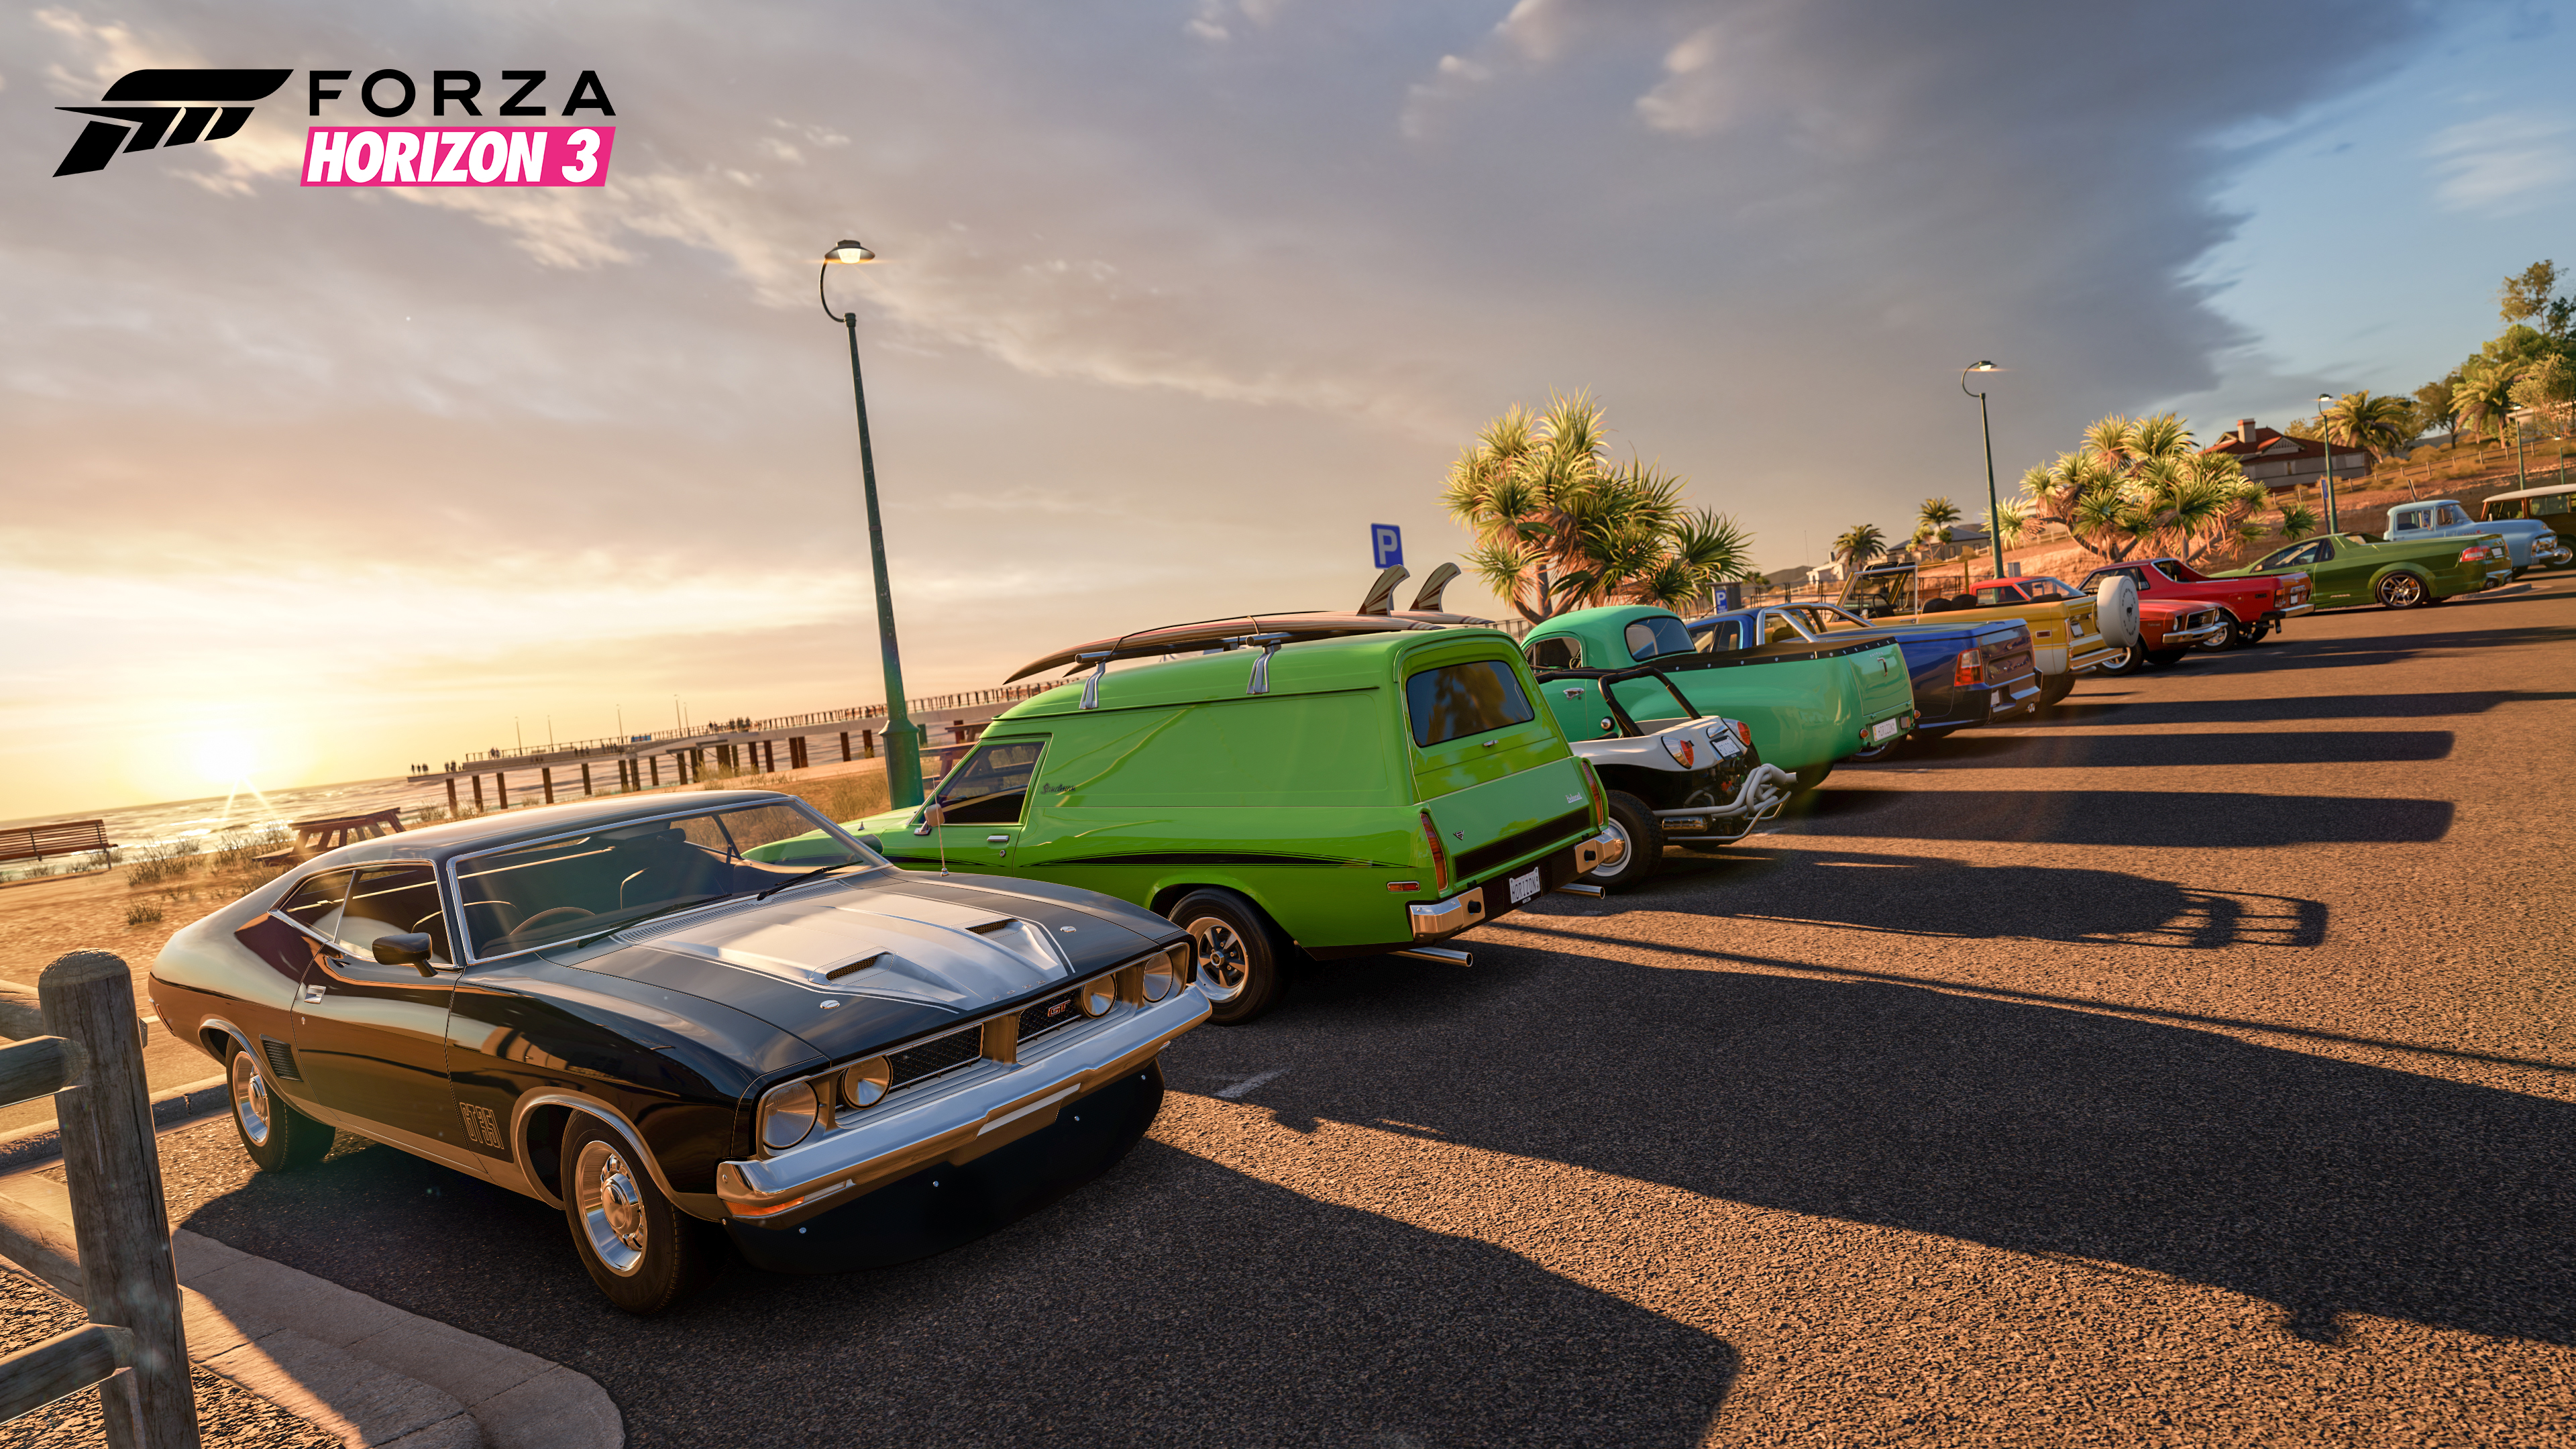 forza horizon 3 review the unofficial fast and furious video game the verge. Black Bedroom Furniture Sets. Home Design Ideas